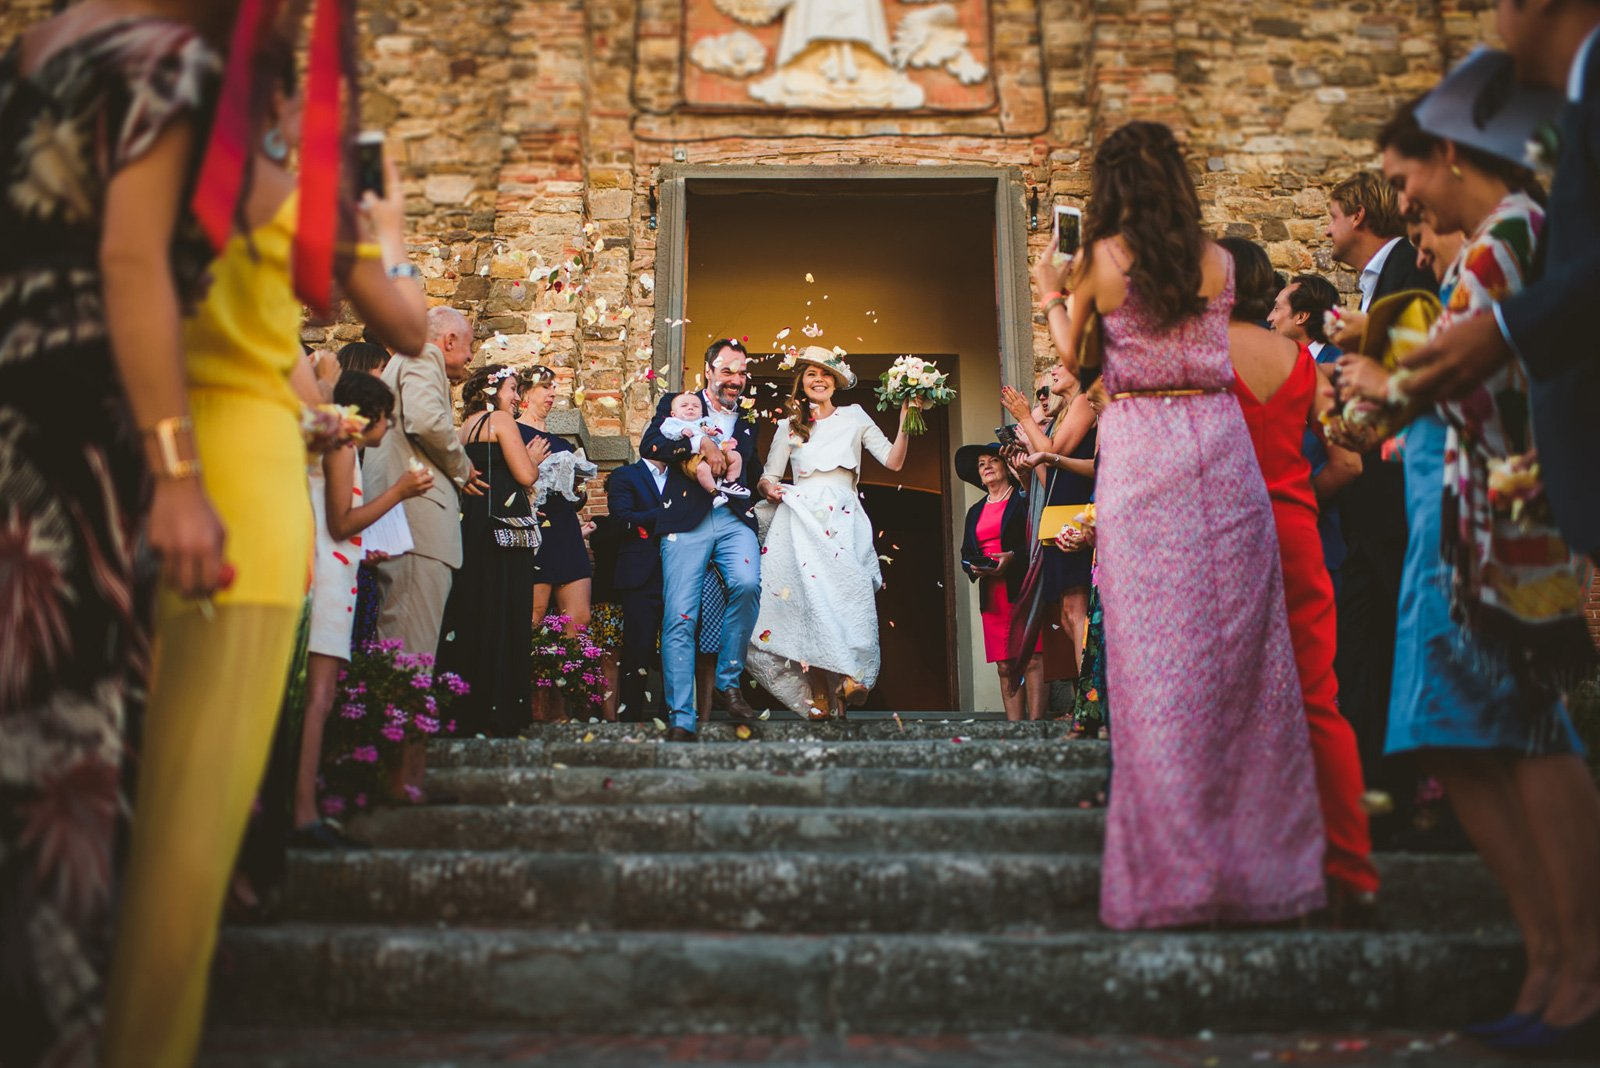 Lovely Wedding in Villa at Rignana by Federico Pannacci Wedding Photographer 60